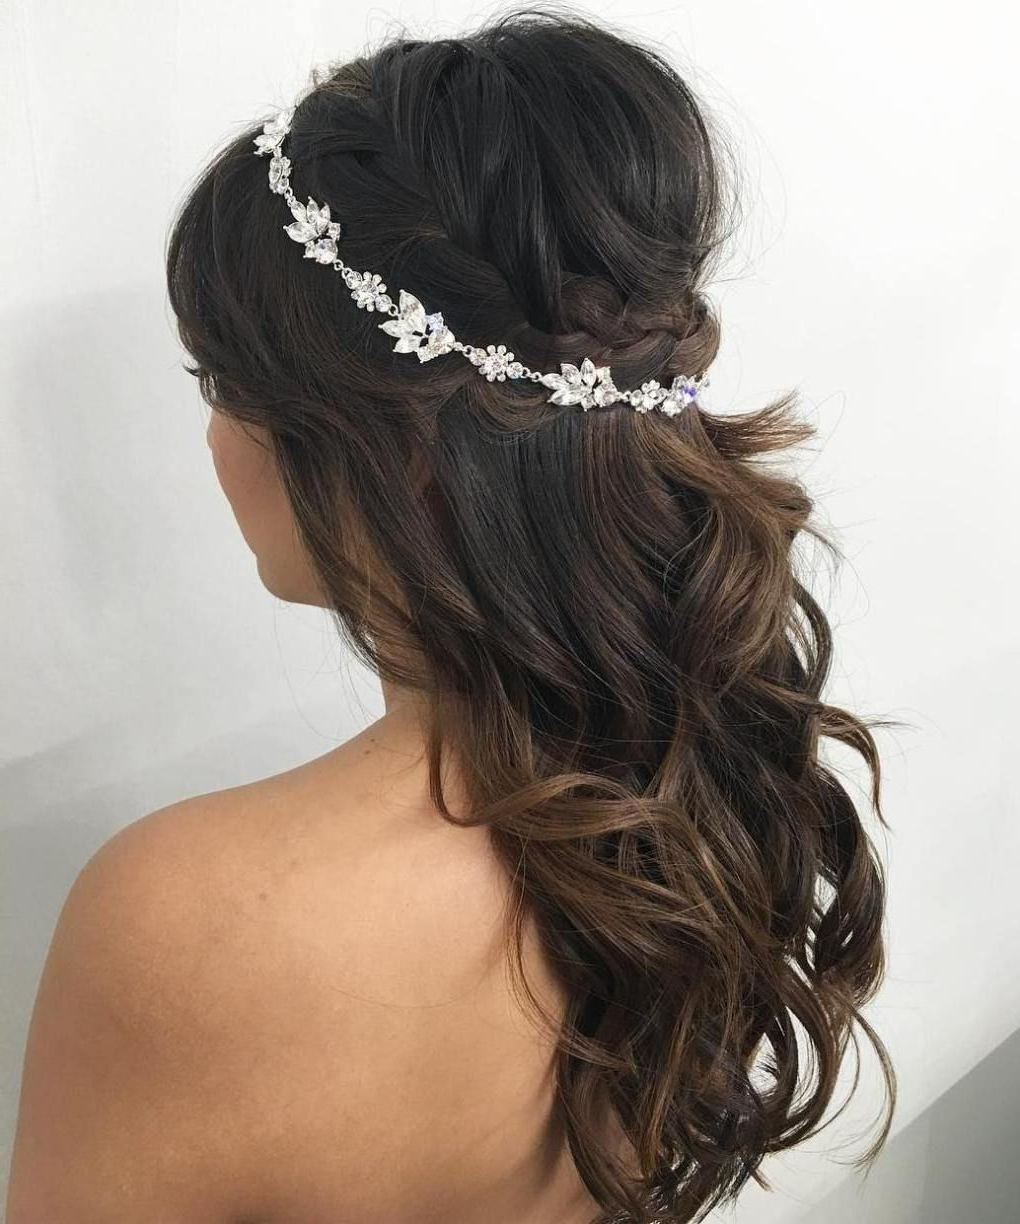 Famous Loose Curly Half Updo Wedding Hairstyles With Bouffant In 40 Gorgeous Wedding Hairstyles For Long Hair (View 15 of 20)